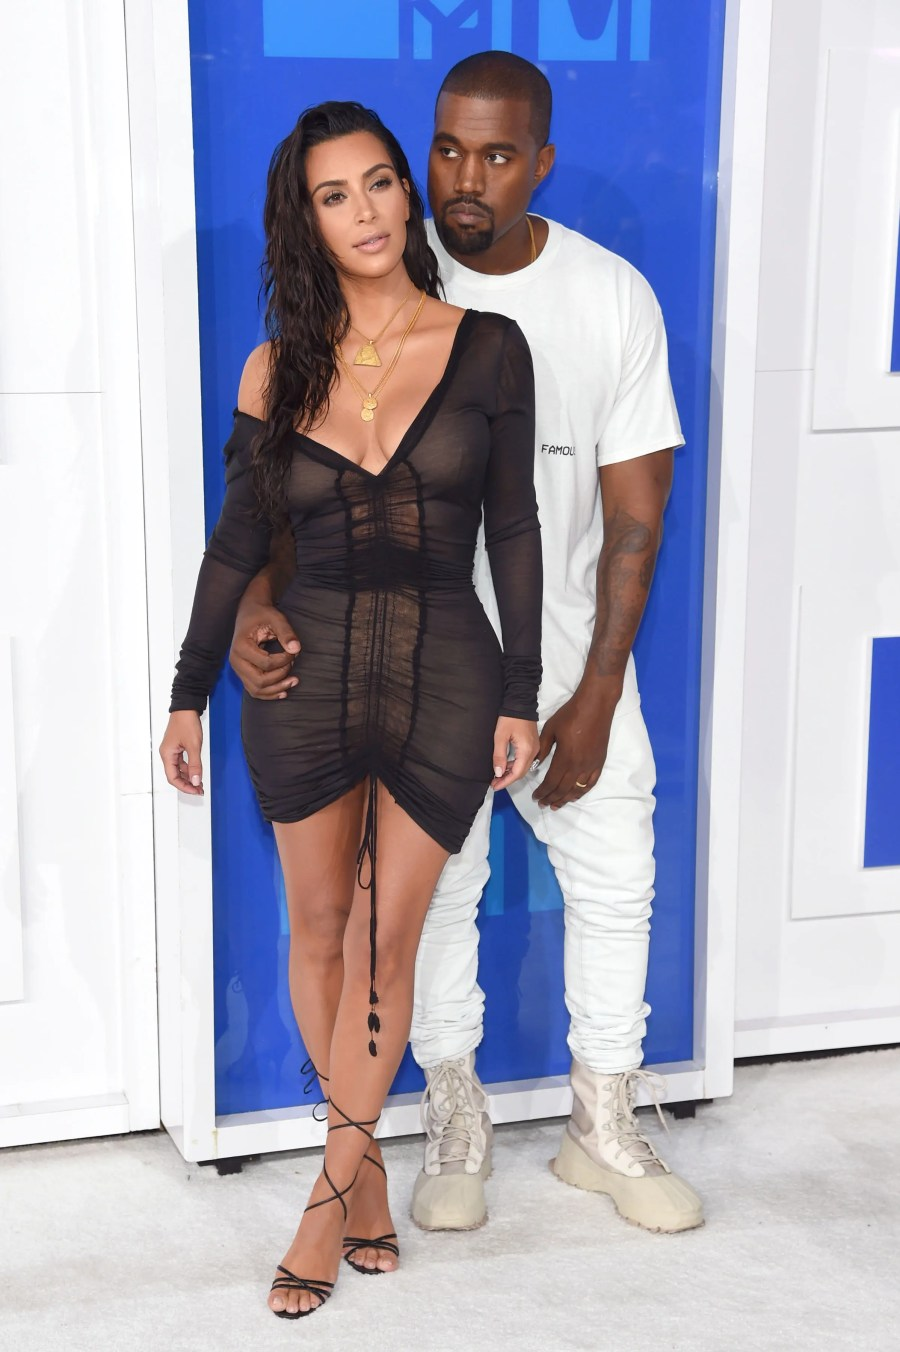 NEW YORK, NY - AUGUST 28: Kanye West and Kim Kardashian West attend the 2016 MTV Video Music Awards at Madison Square Garden on August 28, 2016 in New York City. Jamie McCarthy/Getty Images/AFP